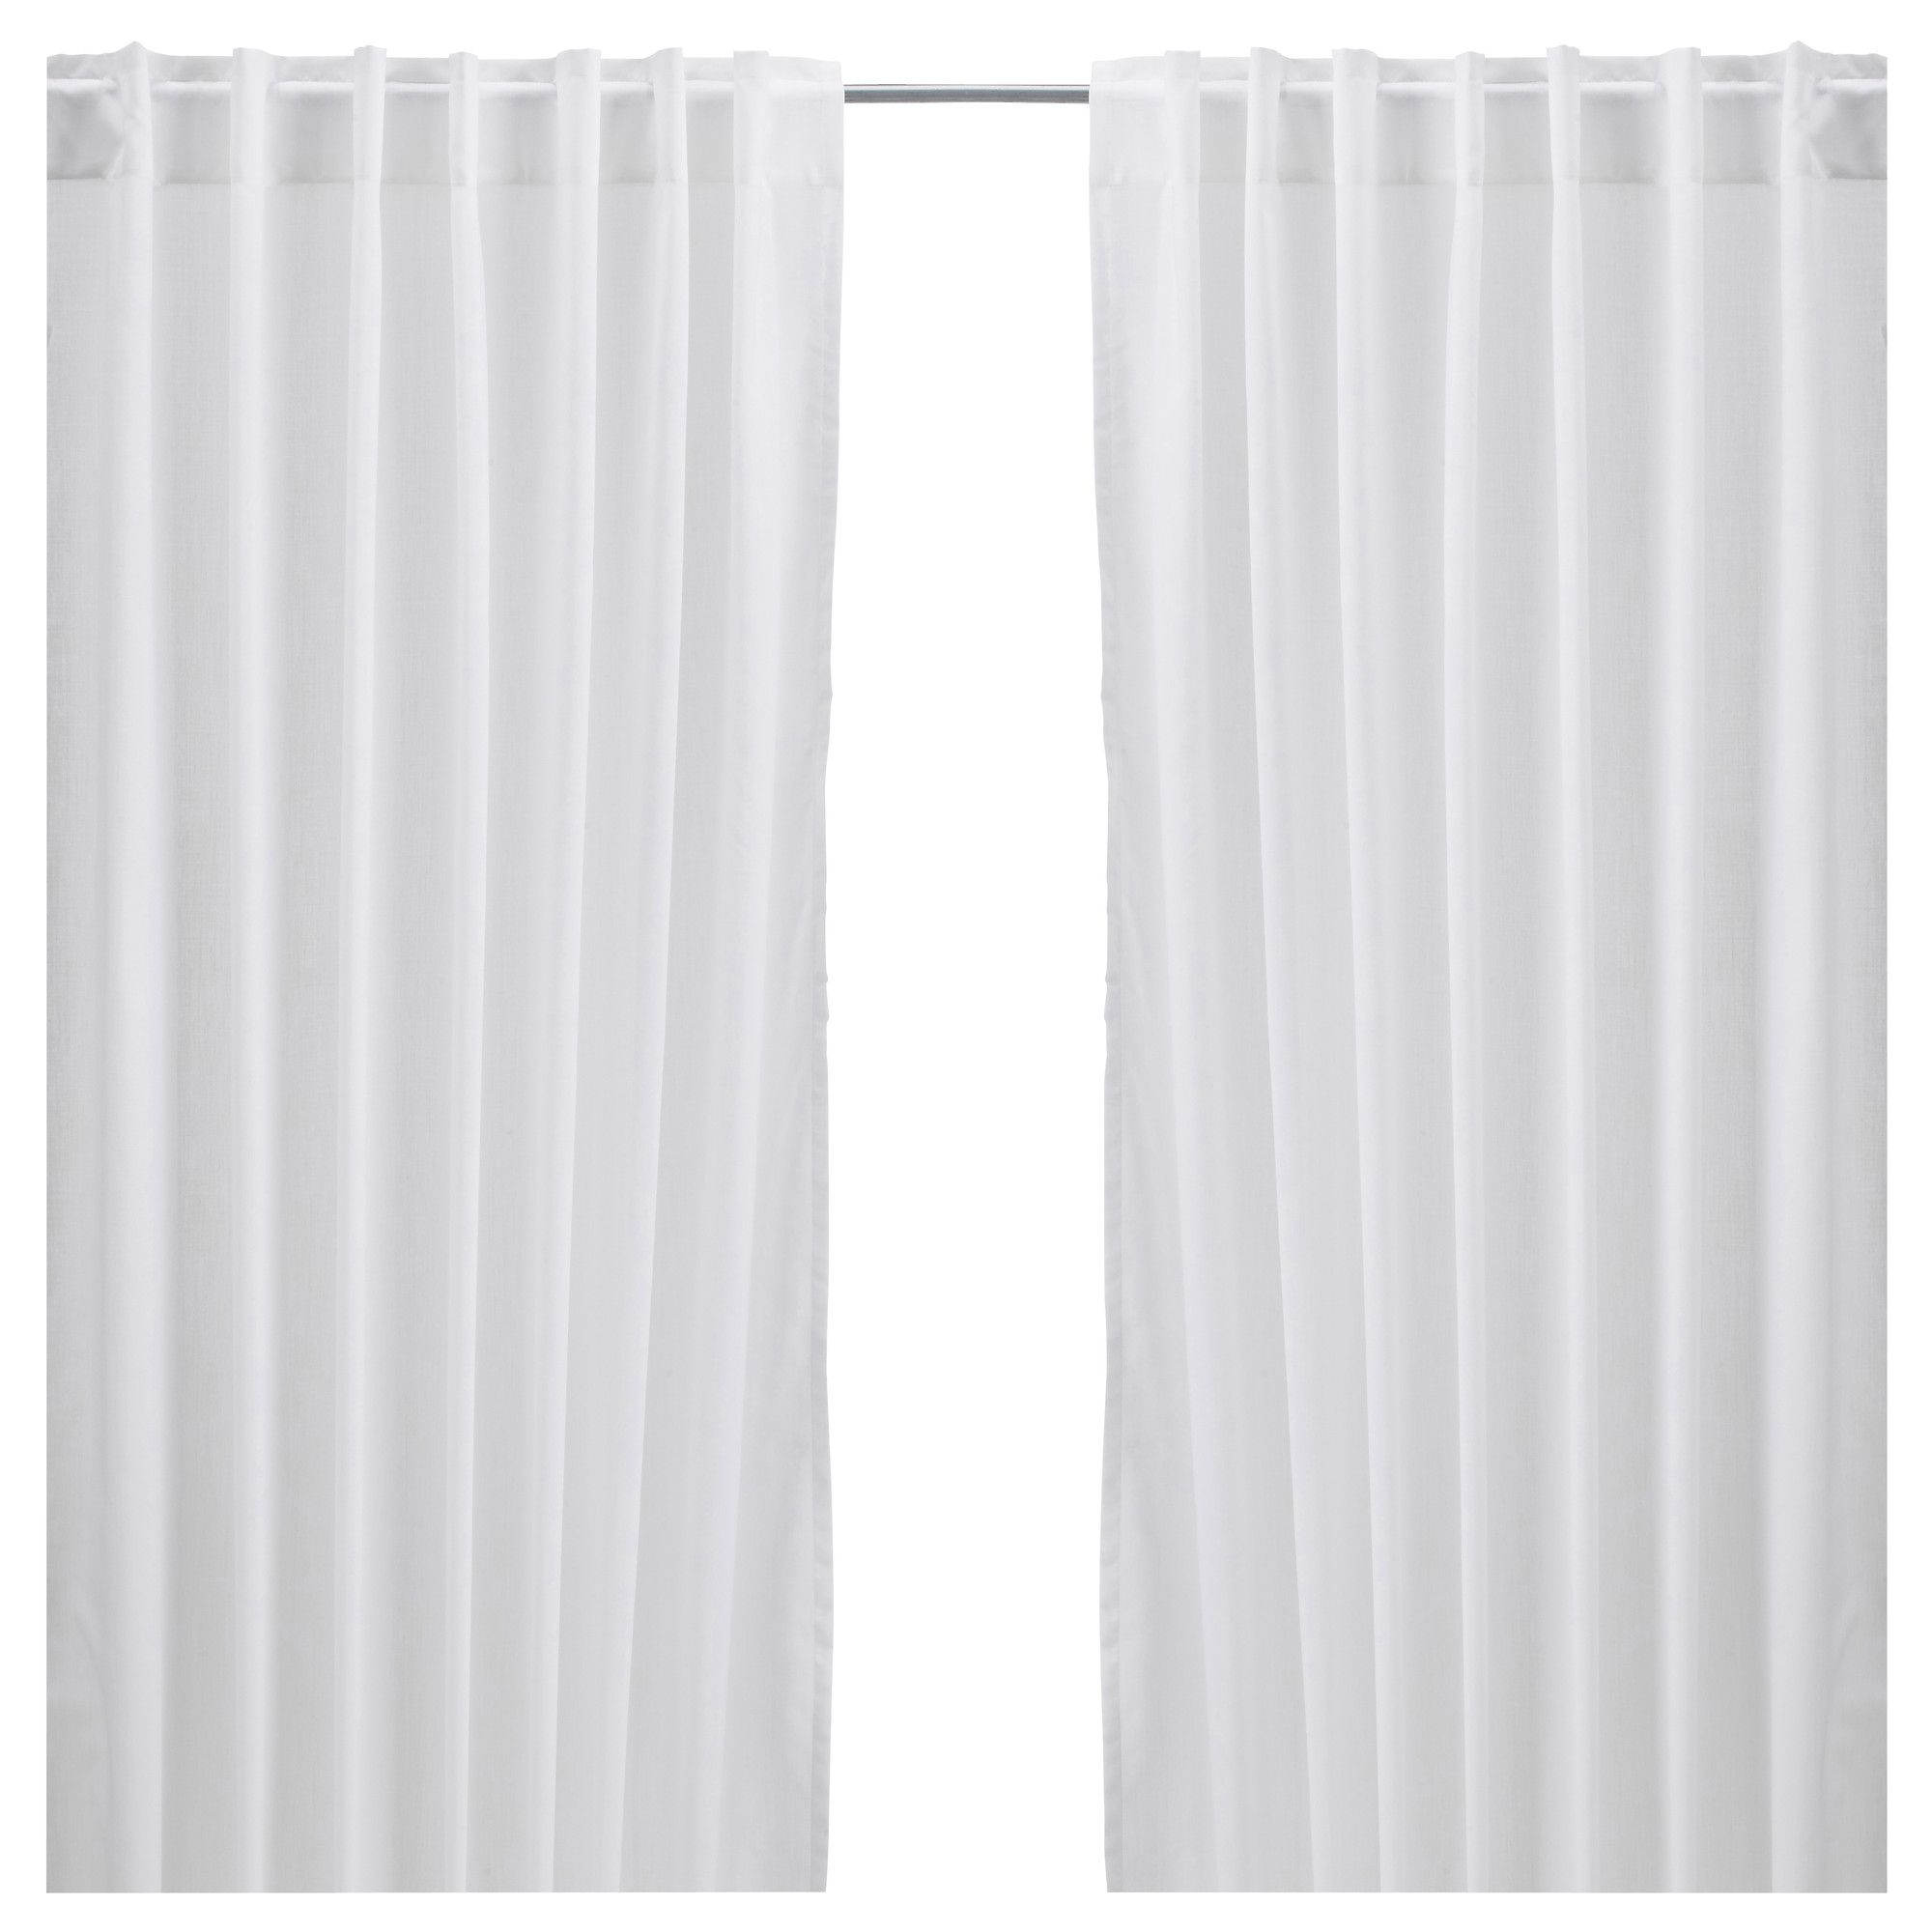 of barn drapes drape pole linen p french panels ivory top pottery picture curtains peyton s